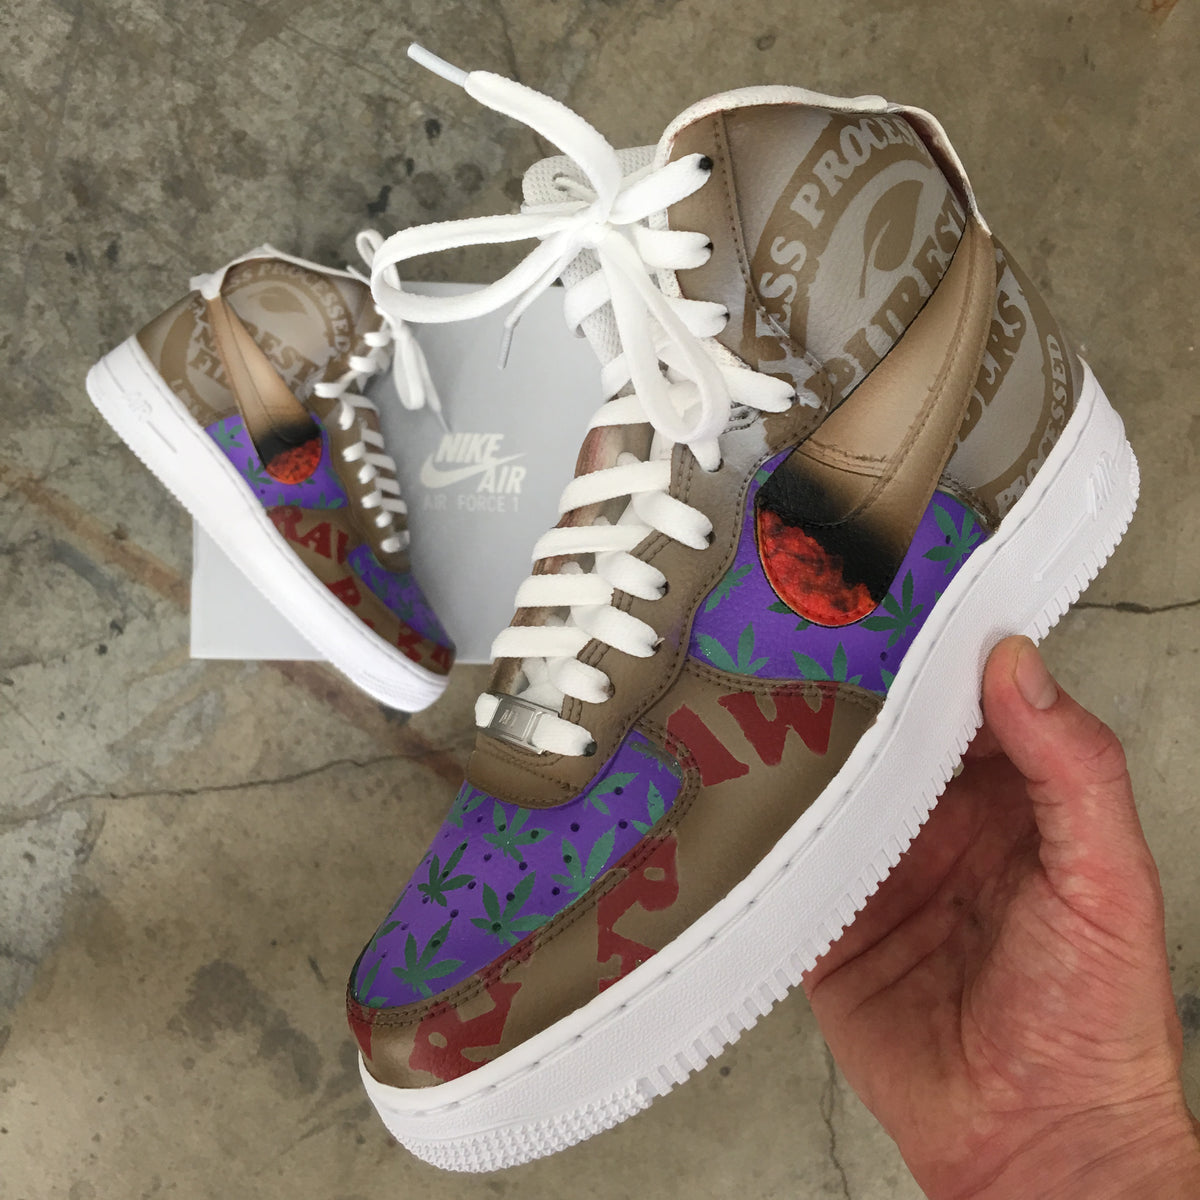 RAW Nike Air Force Ones in 2019 | Nike air force ones